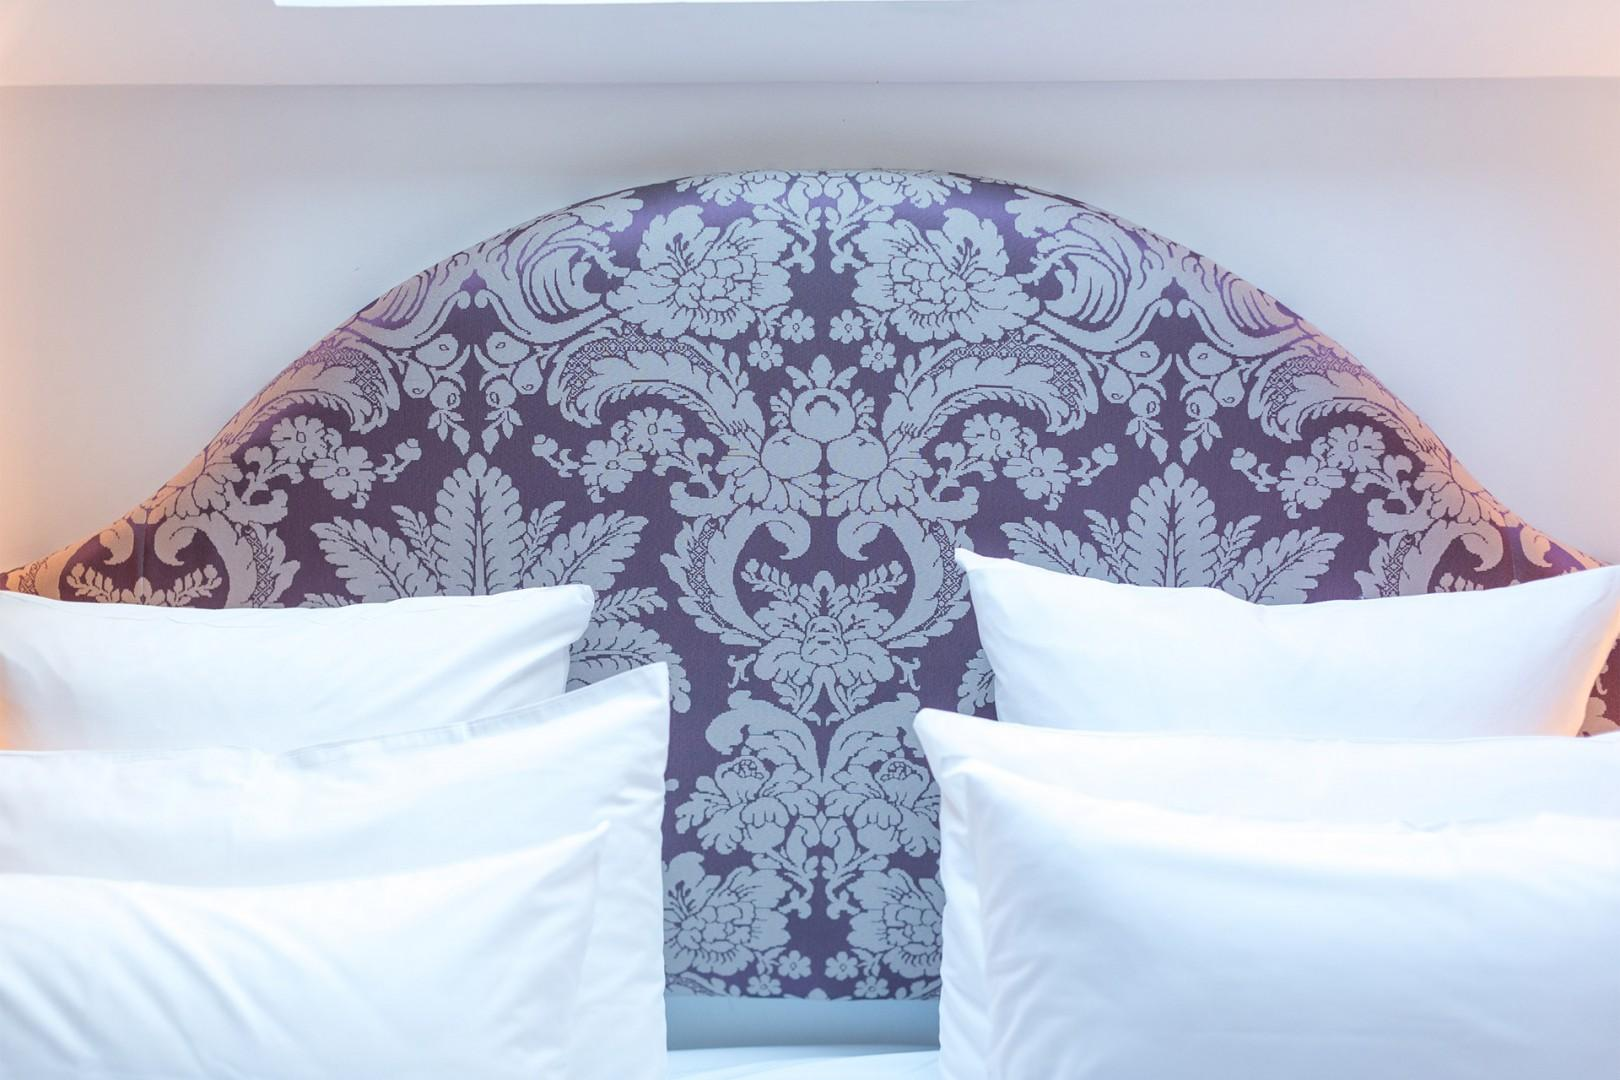 Get a good night's sleep in the regal bed!